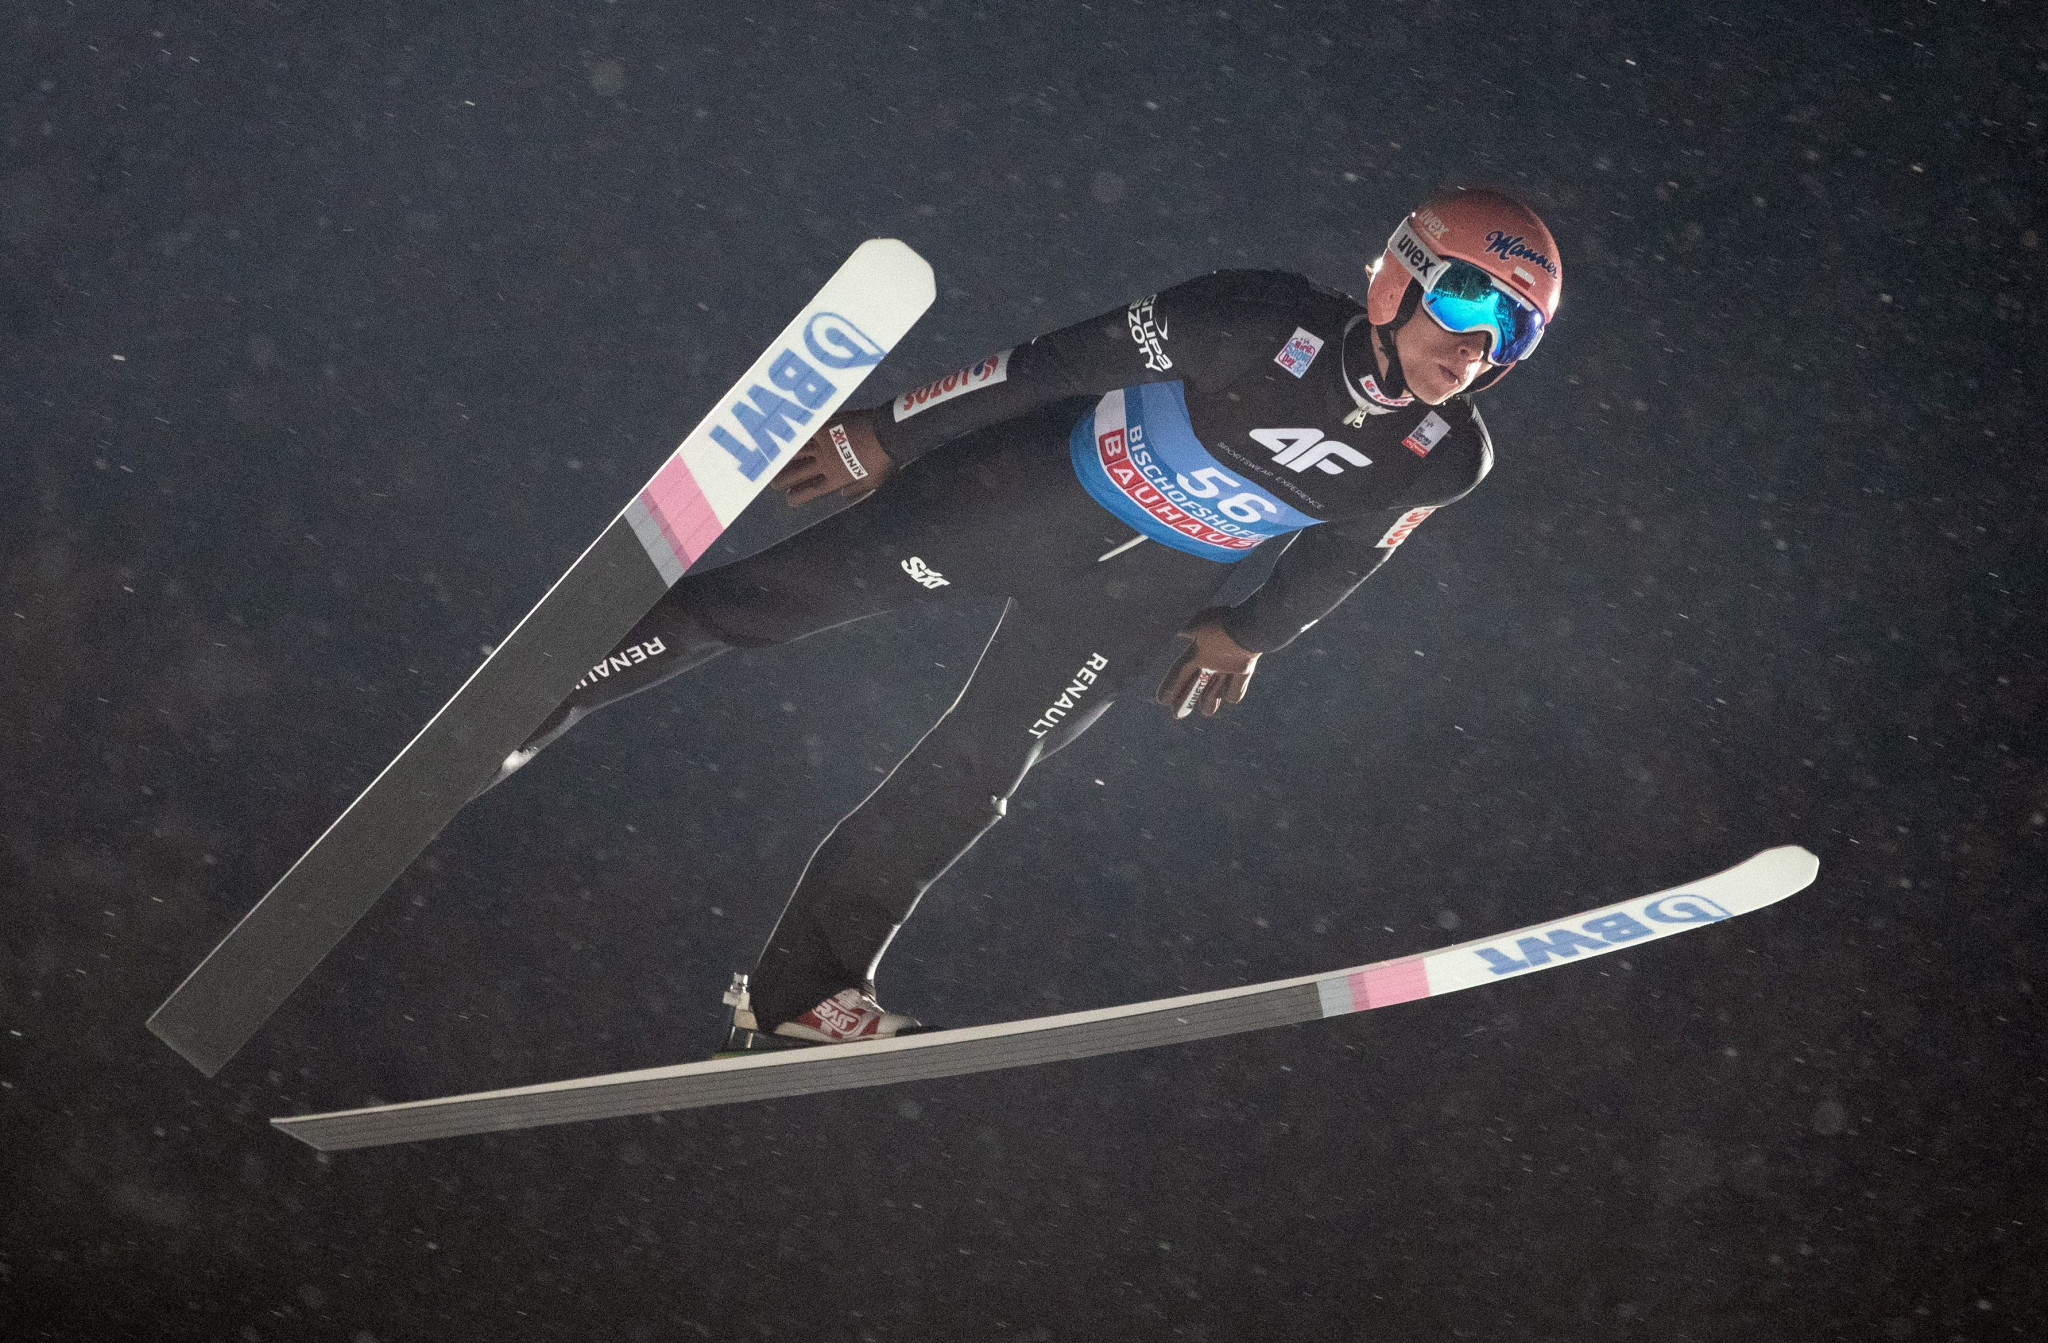 Kobayashi and Lundby seeking further wins as FIS Ski Jumping World Cup season continues